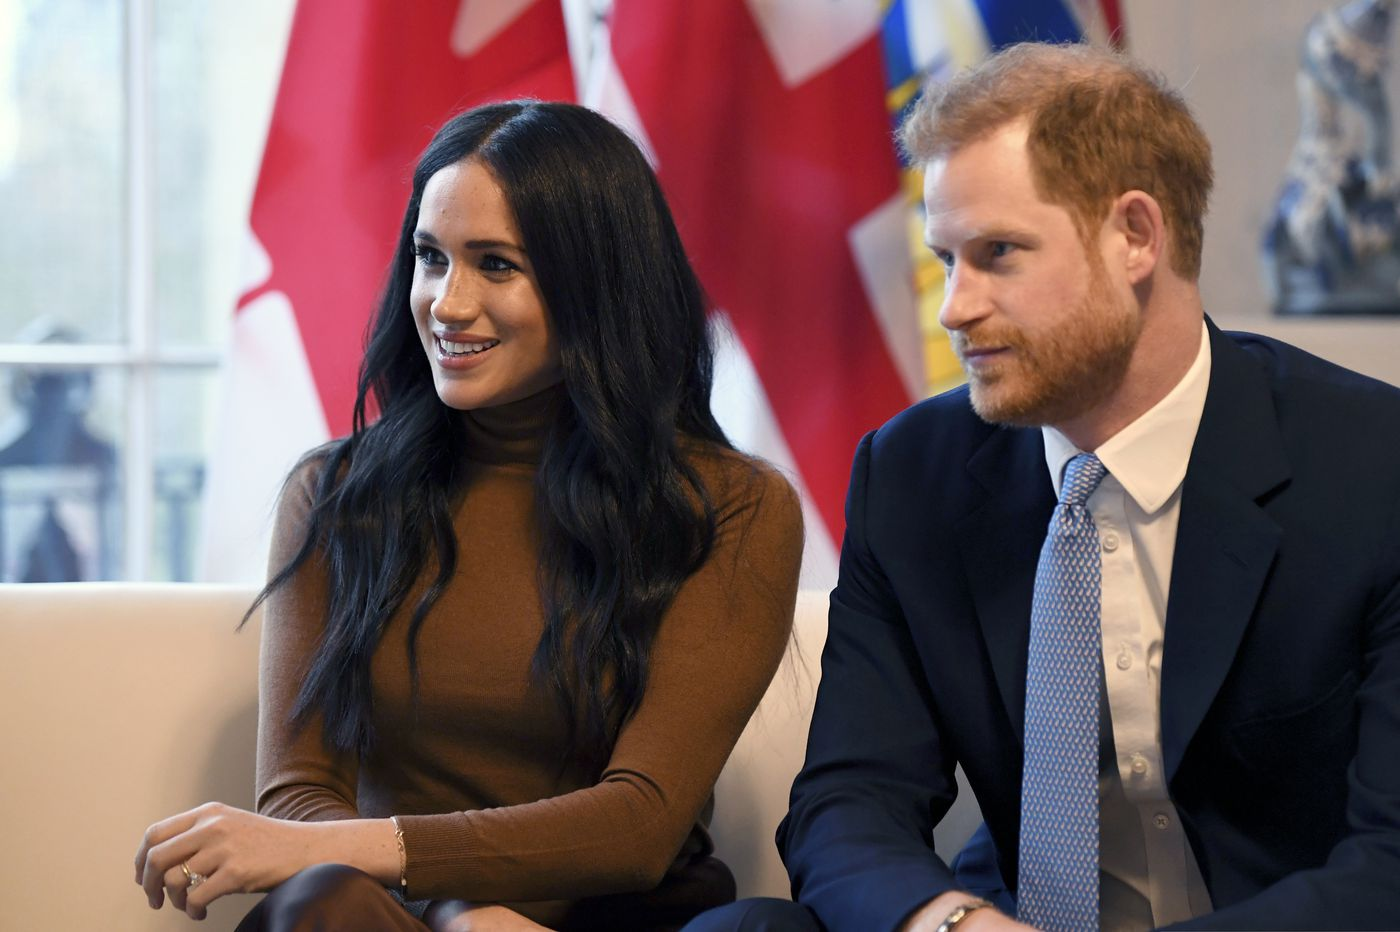 Prince Harry and Meghan to 'step back' as British royals, split time between U.K. and North America